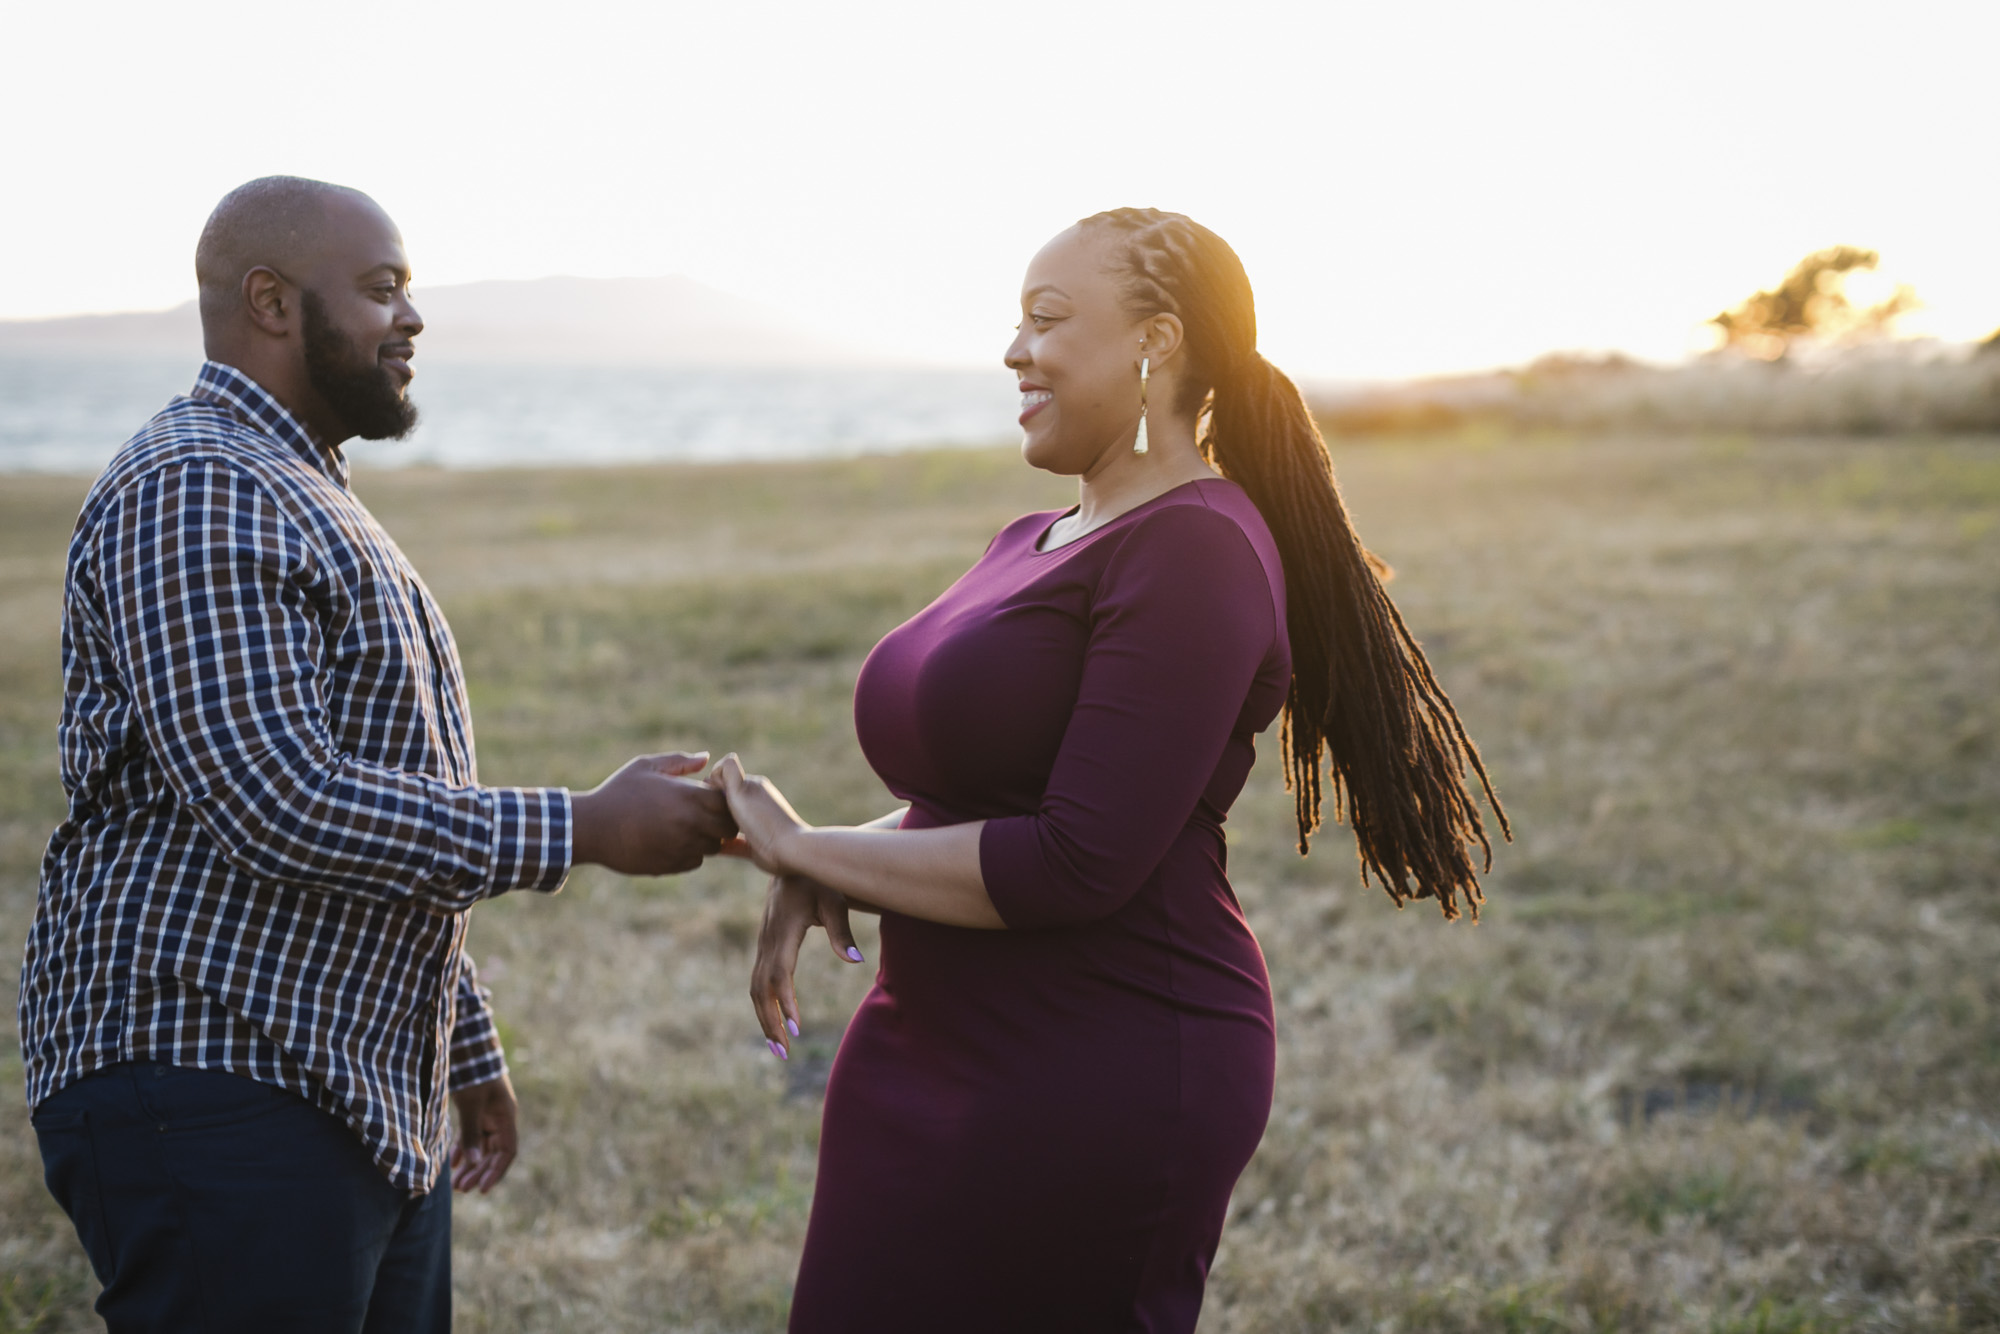 An engaged couple dance together at sunset in Berkeley, she has braids and a purple dress